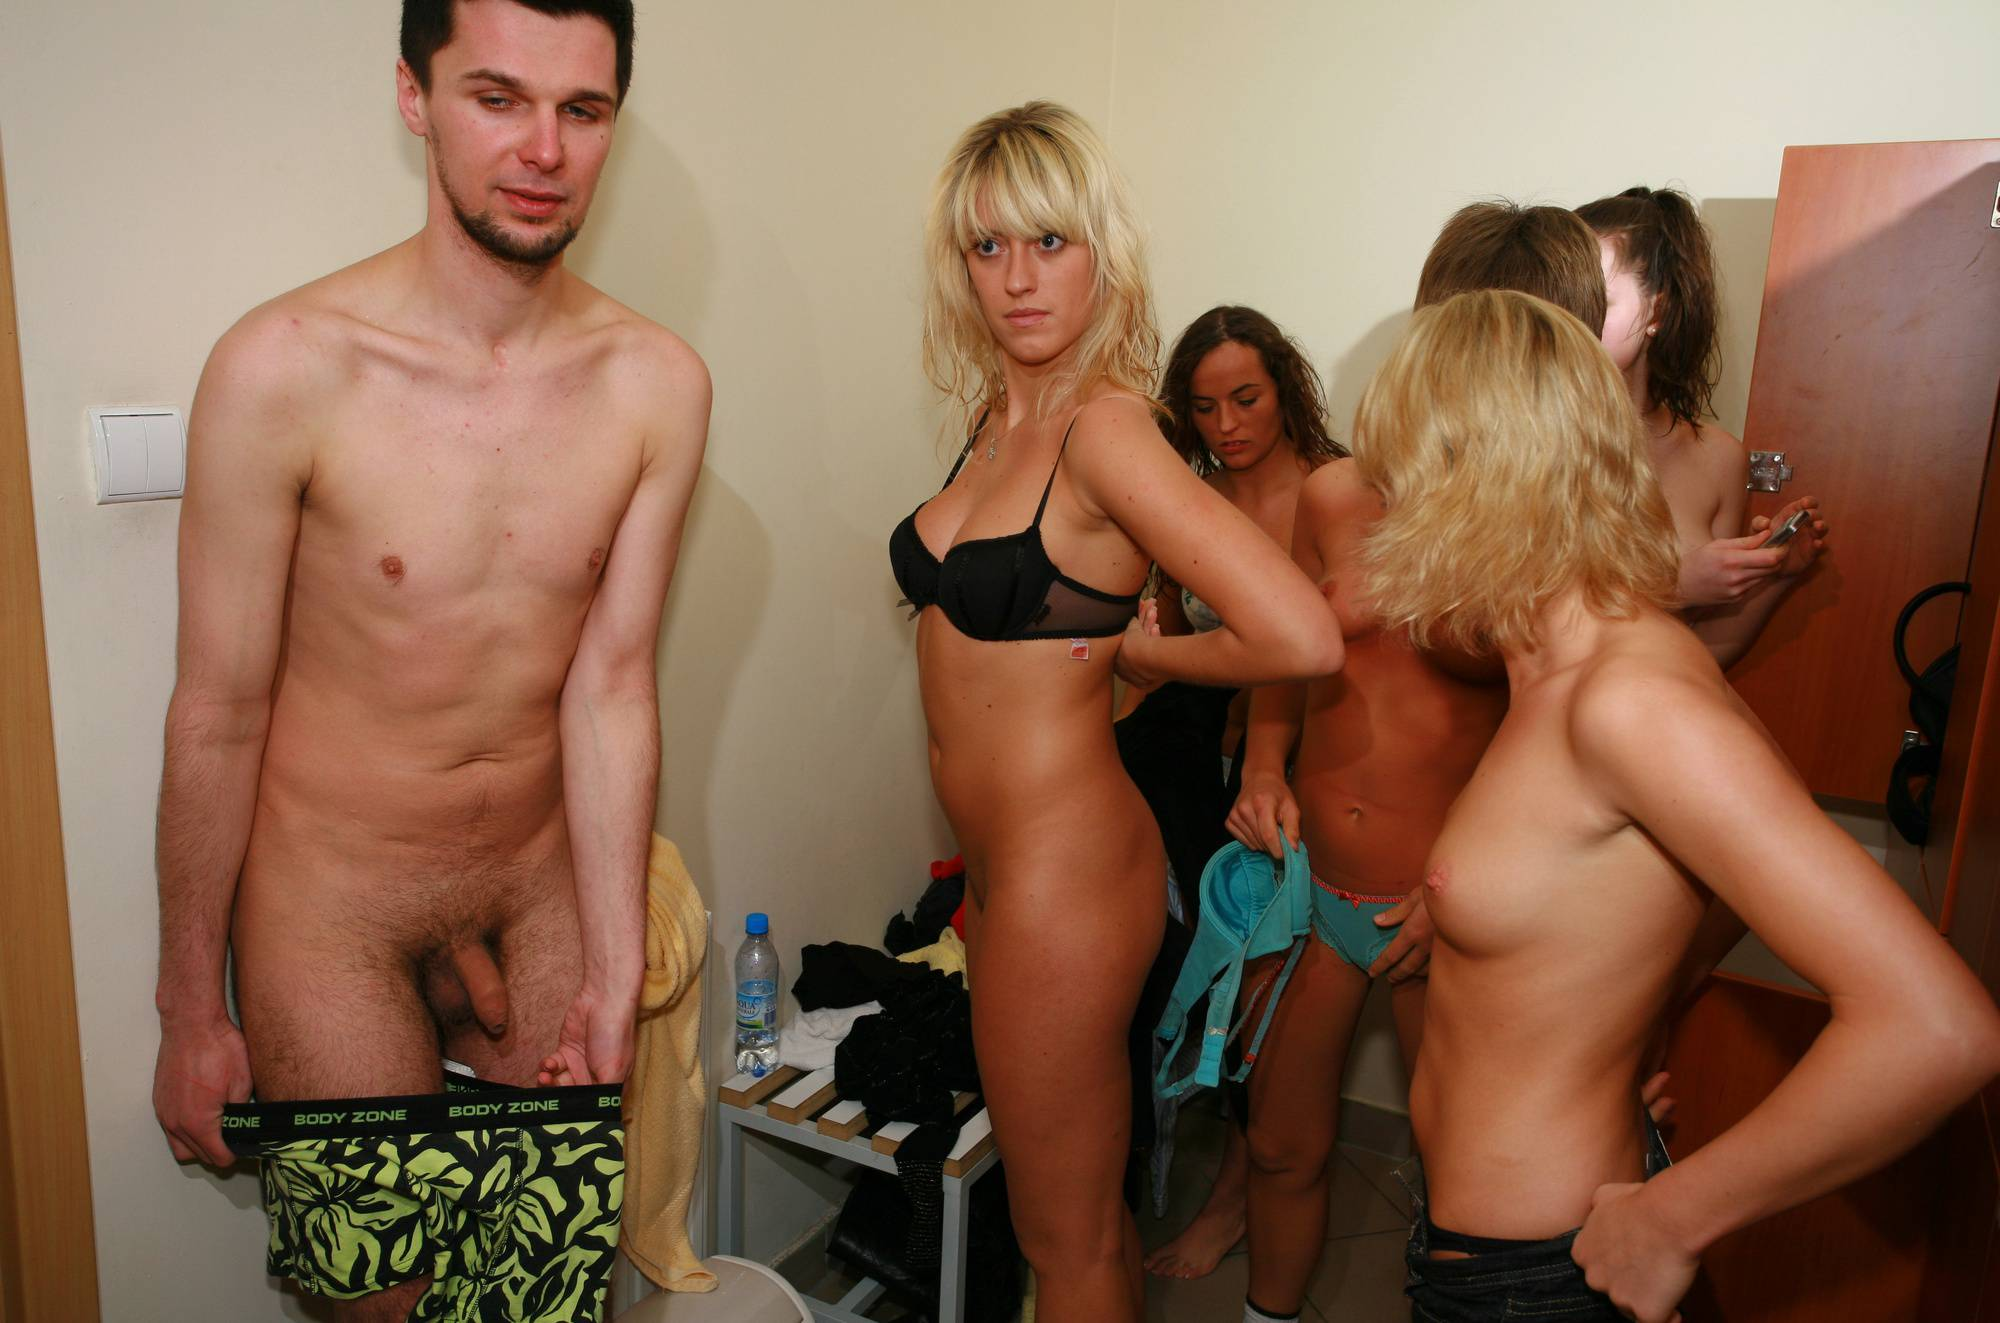 Nudist Photos Scuba Gym Preparations - 2